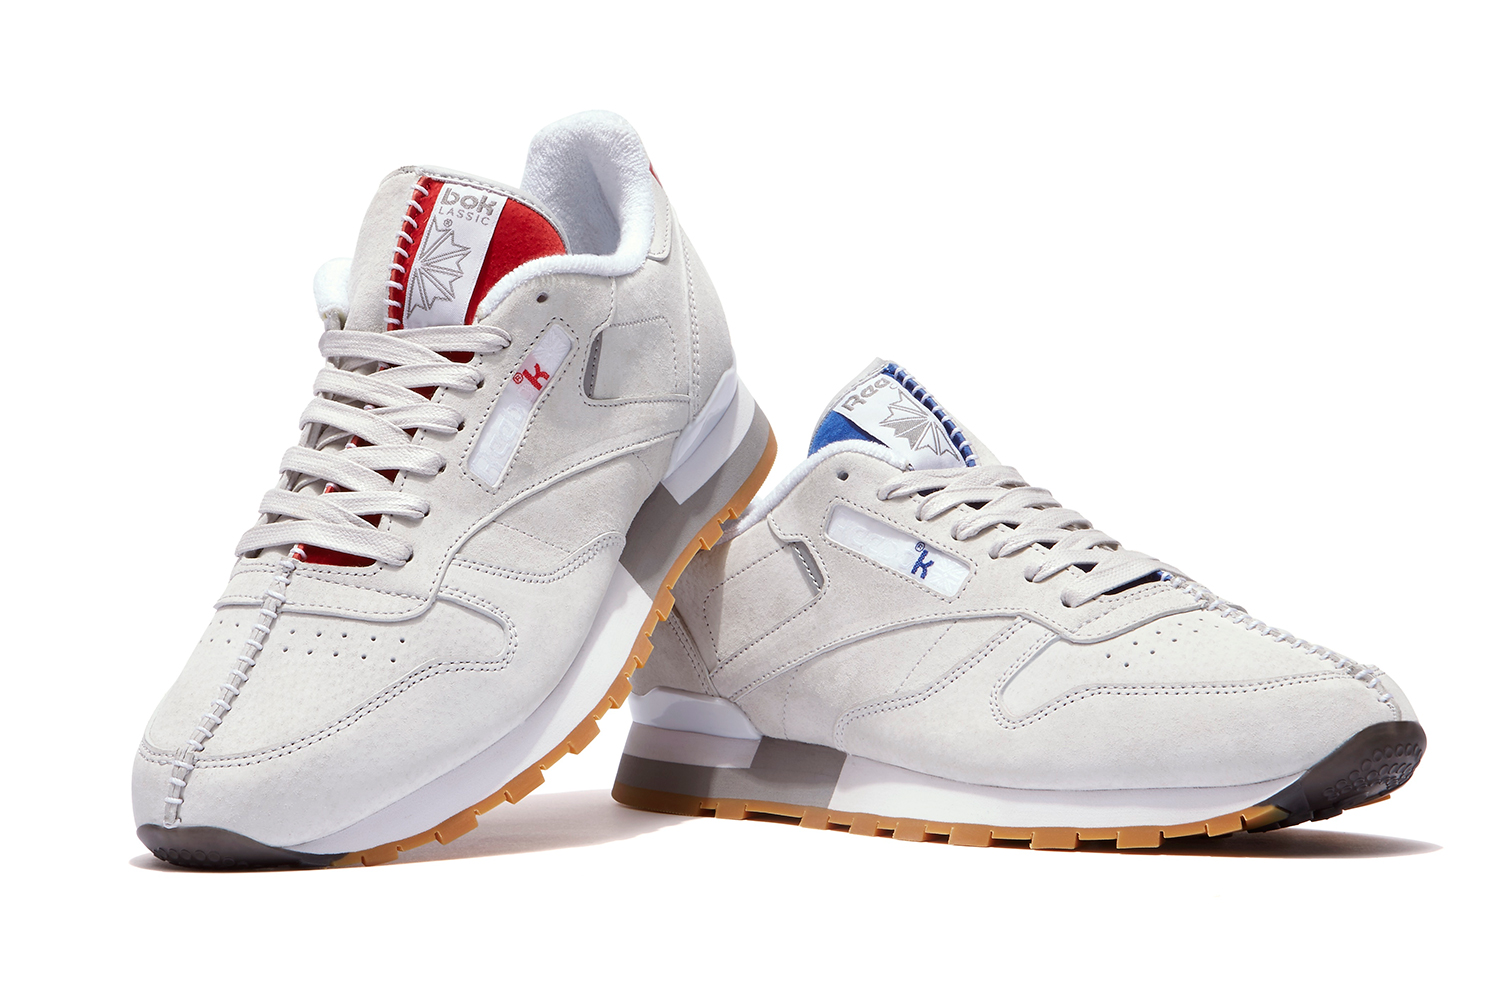 kendrick-lamar-reebok-classic-leather-deconstructed-01.jpg